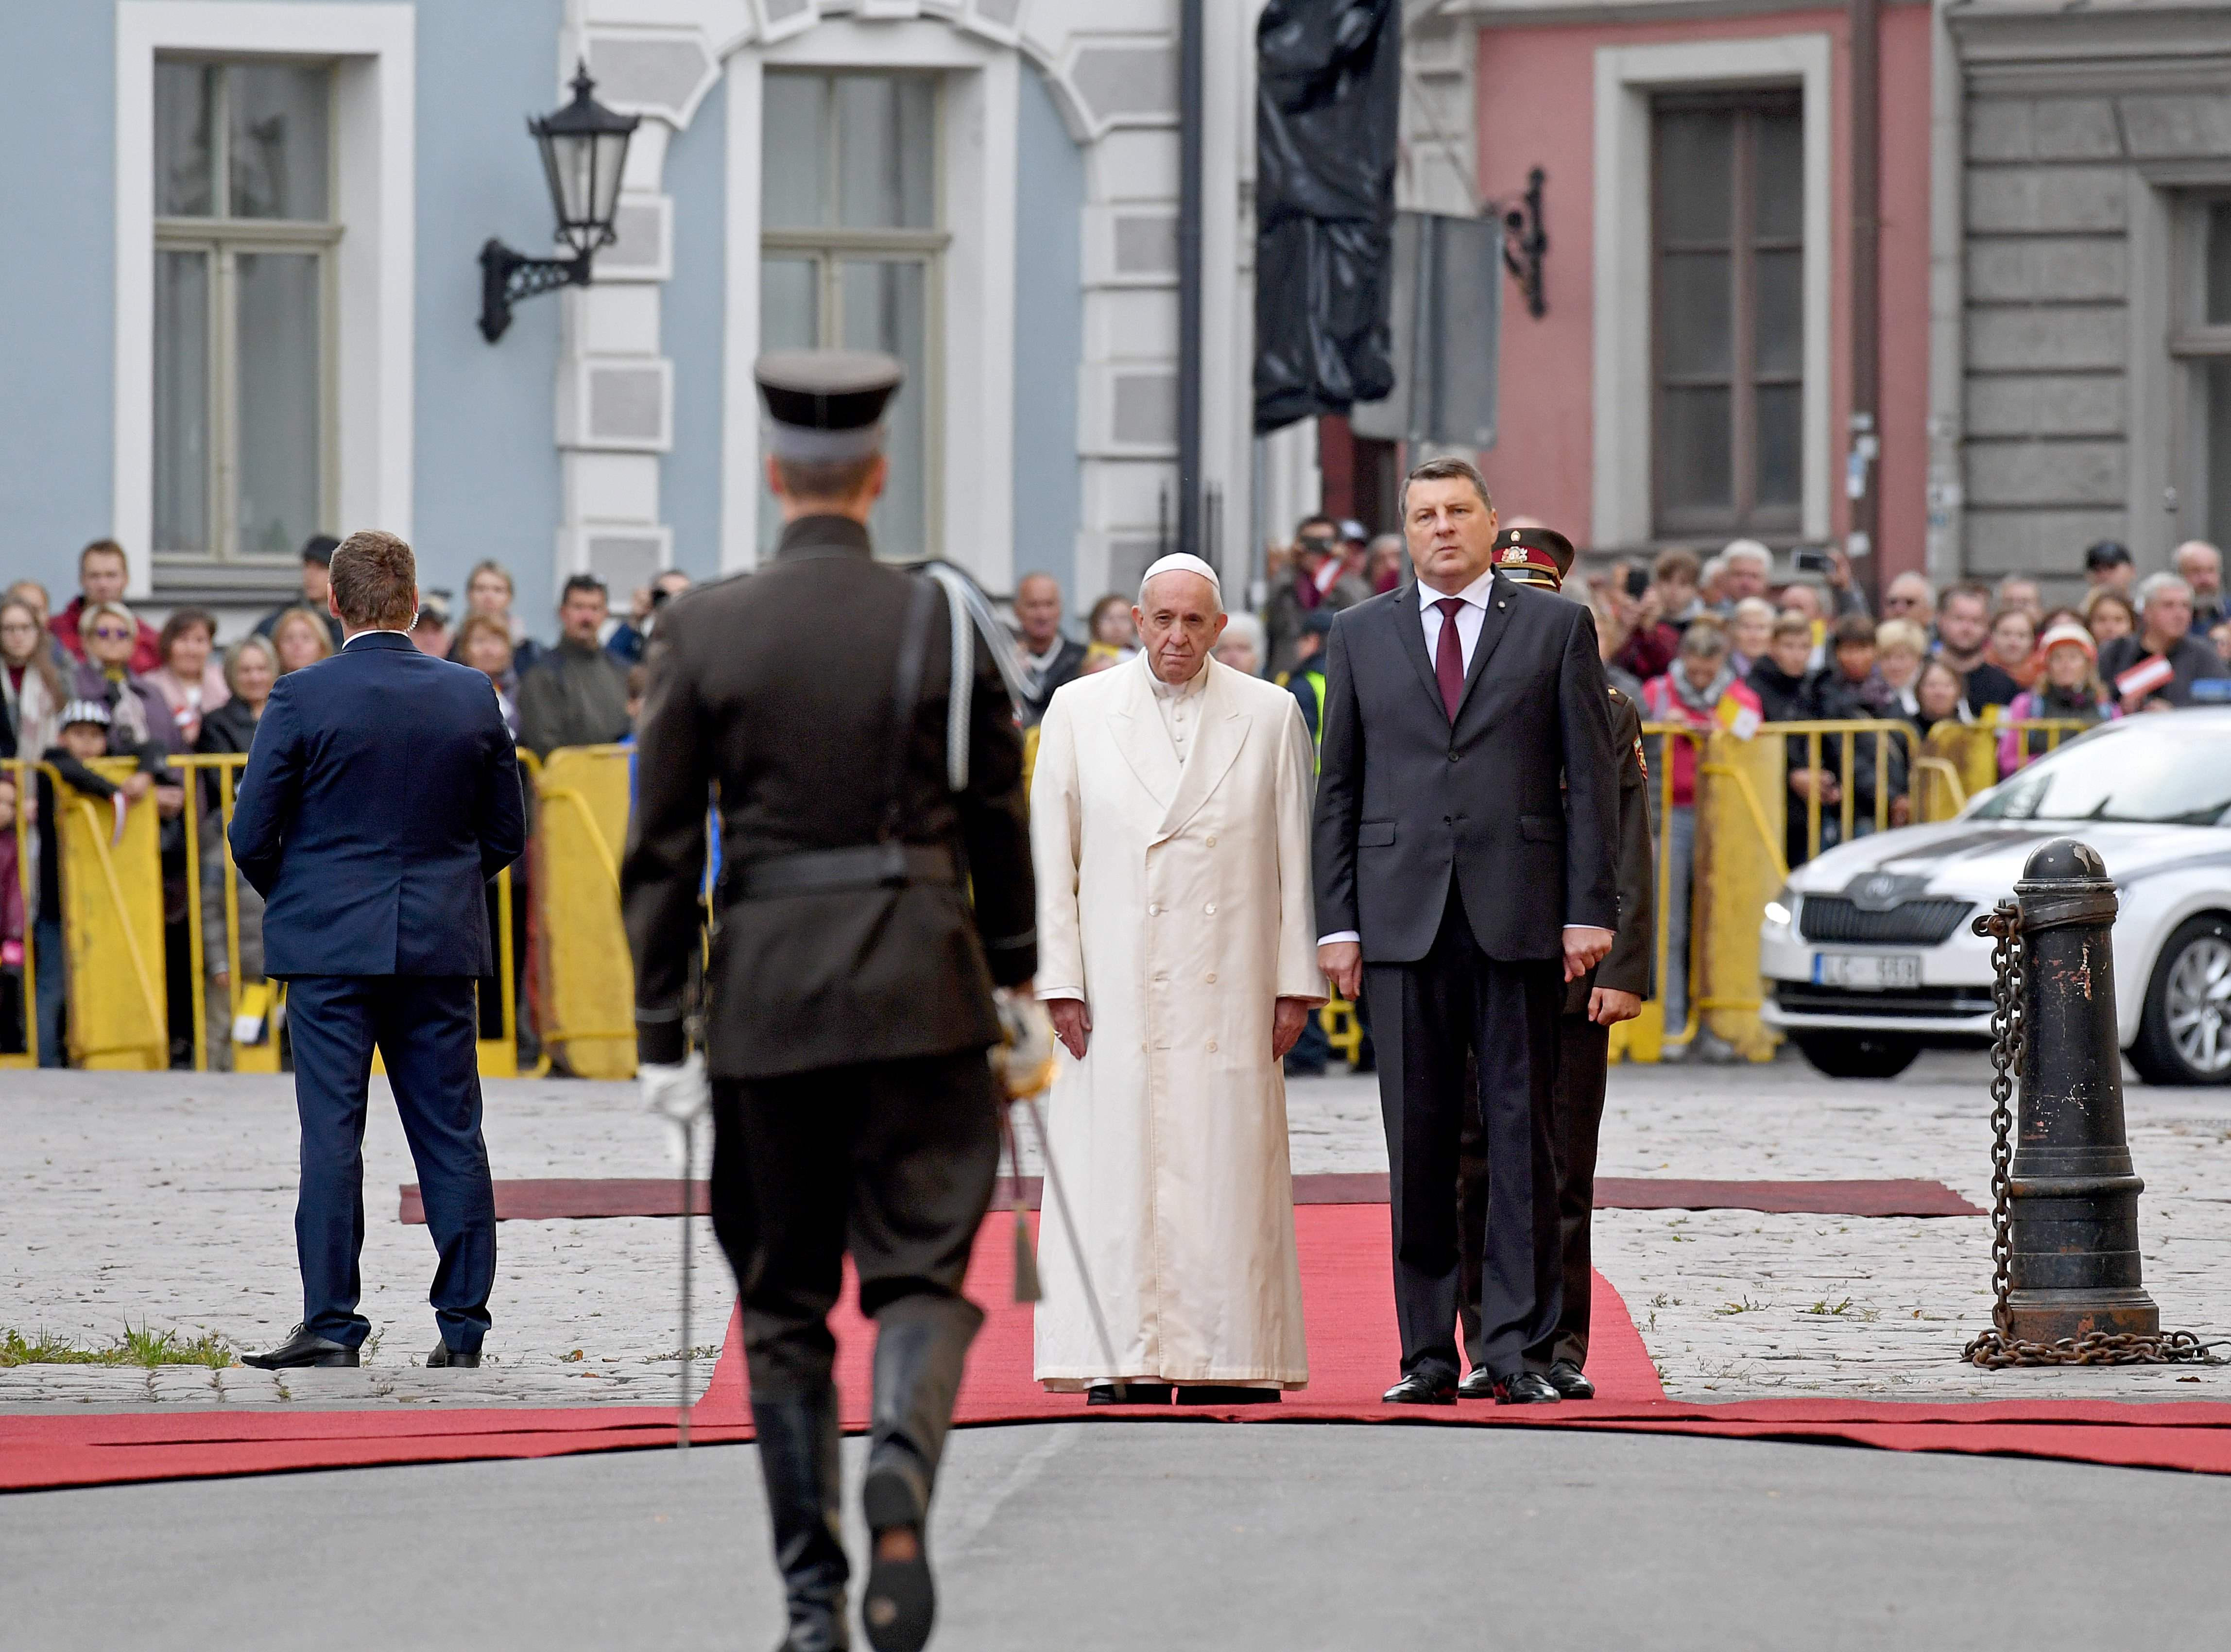 Pope Francis in Lithuania (Photo: AFP)